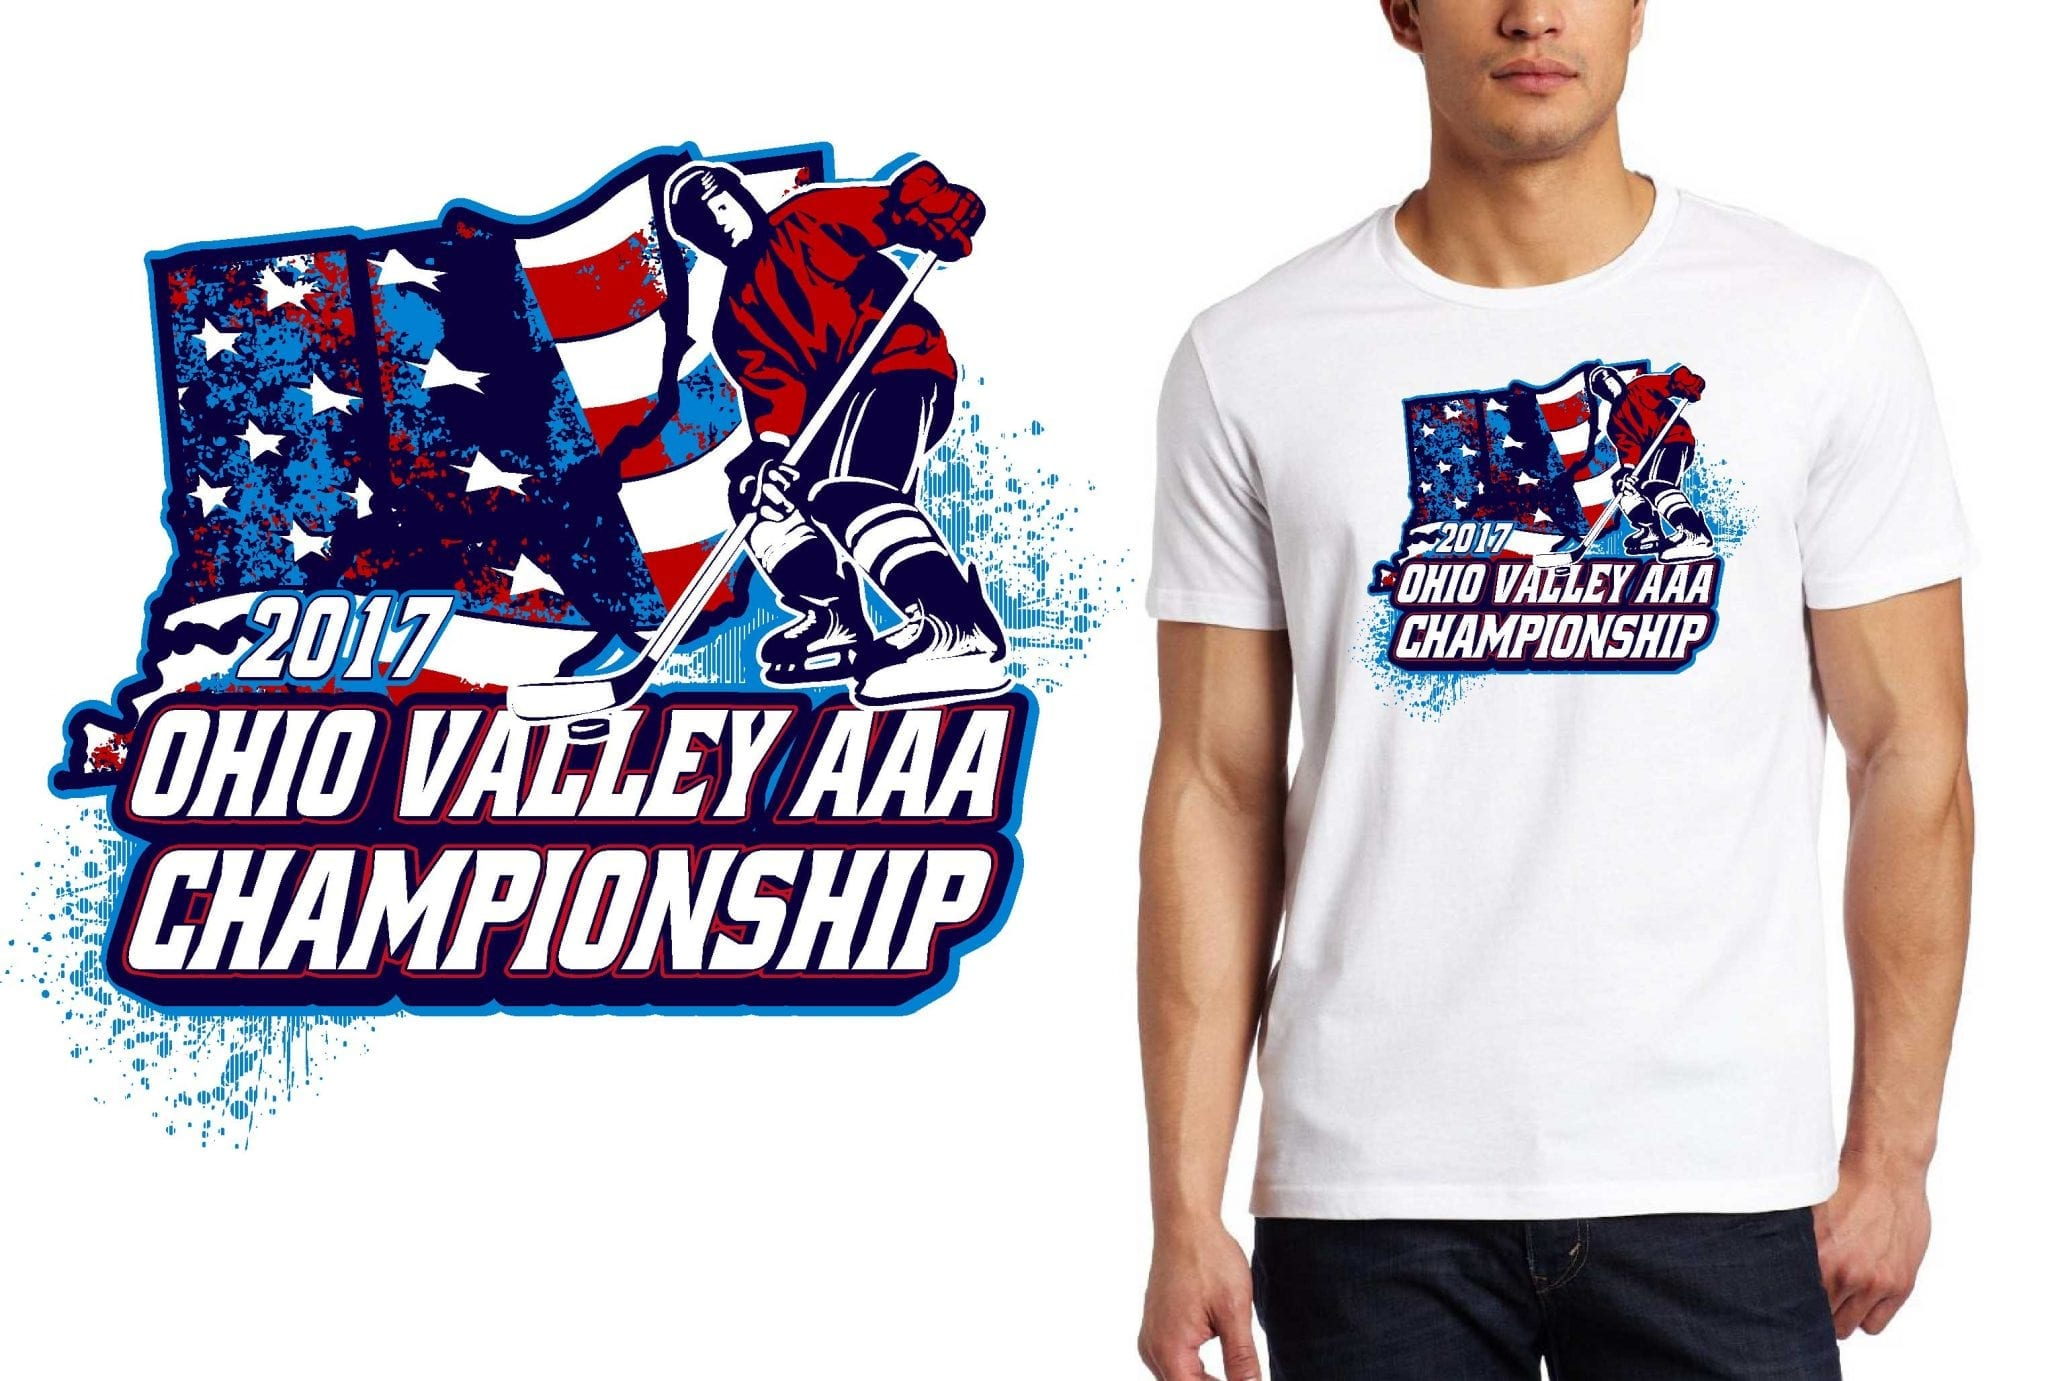 HOCKEY T SHIRT LOGO DESIGN Ohio-Valley-AAA-Championships BY UrArtStudio